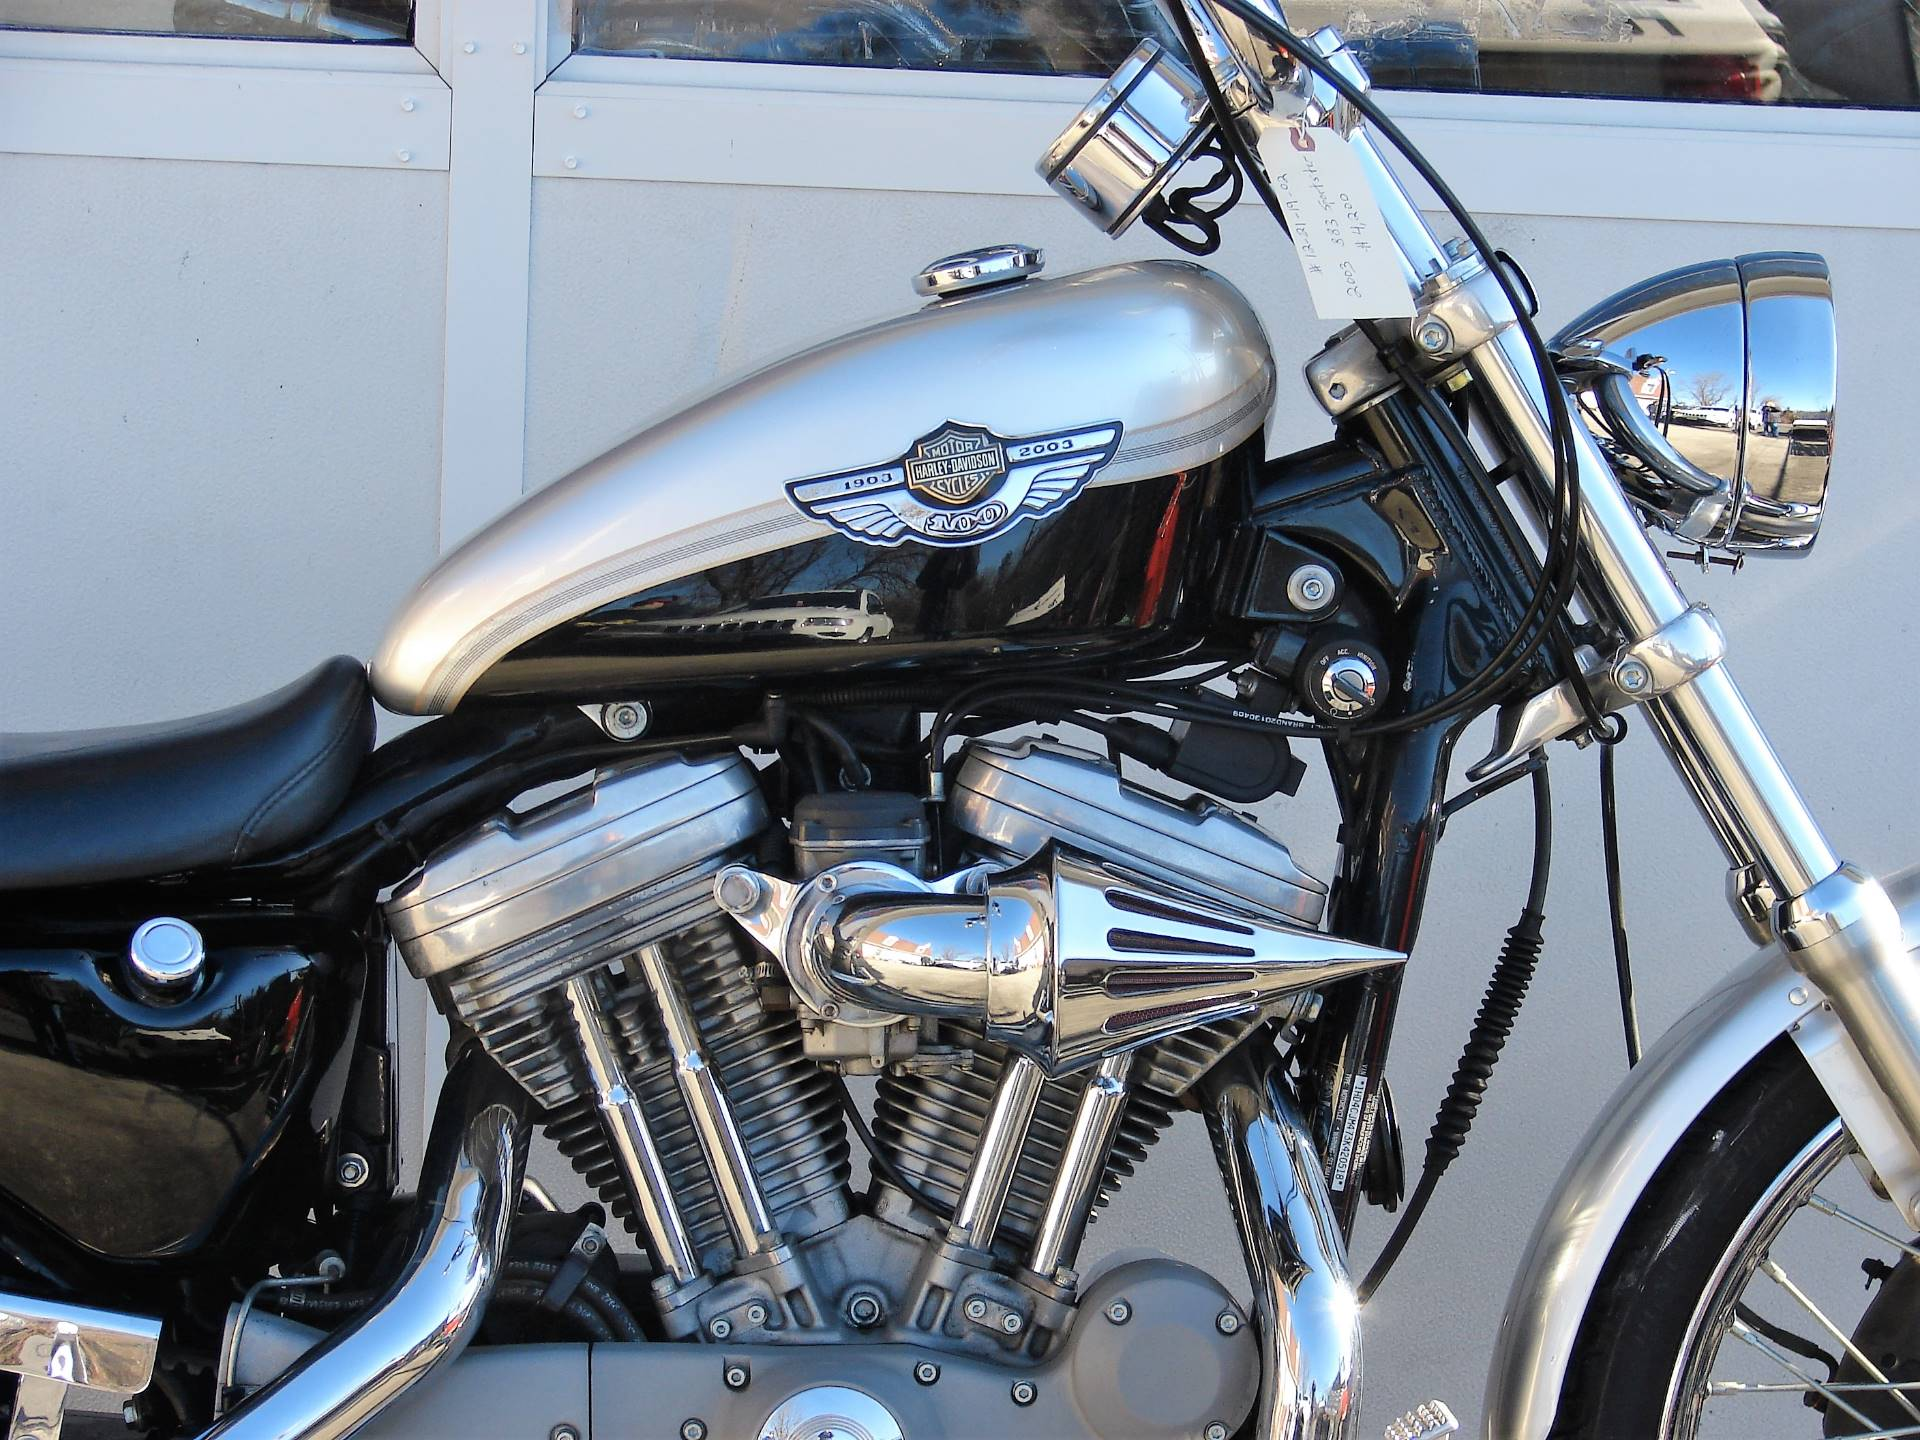 2003 Harley-Davidson XLH 883 Sportster (Anniversary Edition) (Silver & Black) in Williamstown, New Jersey - Photo 11